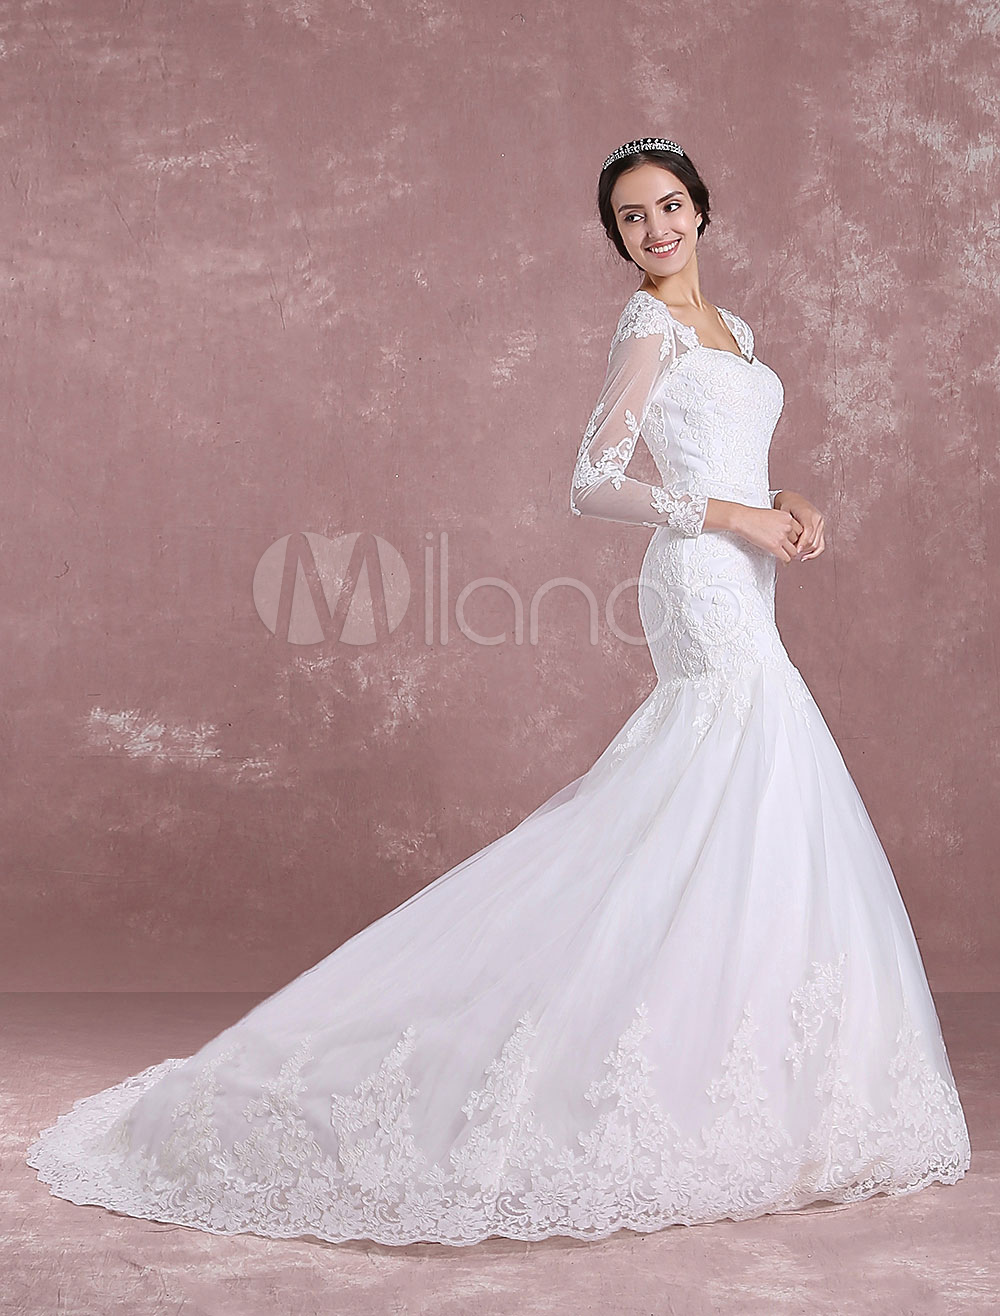 Mermaid Wedding Dress Long Sleeve Bridal Dress Lace Applique Anne ...